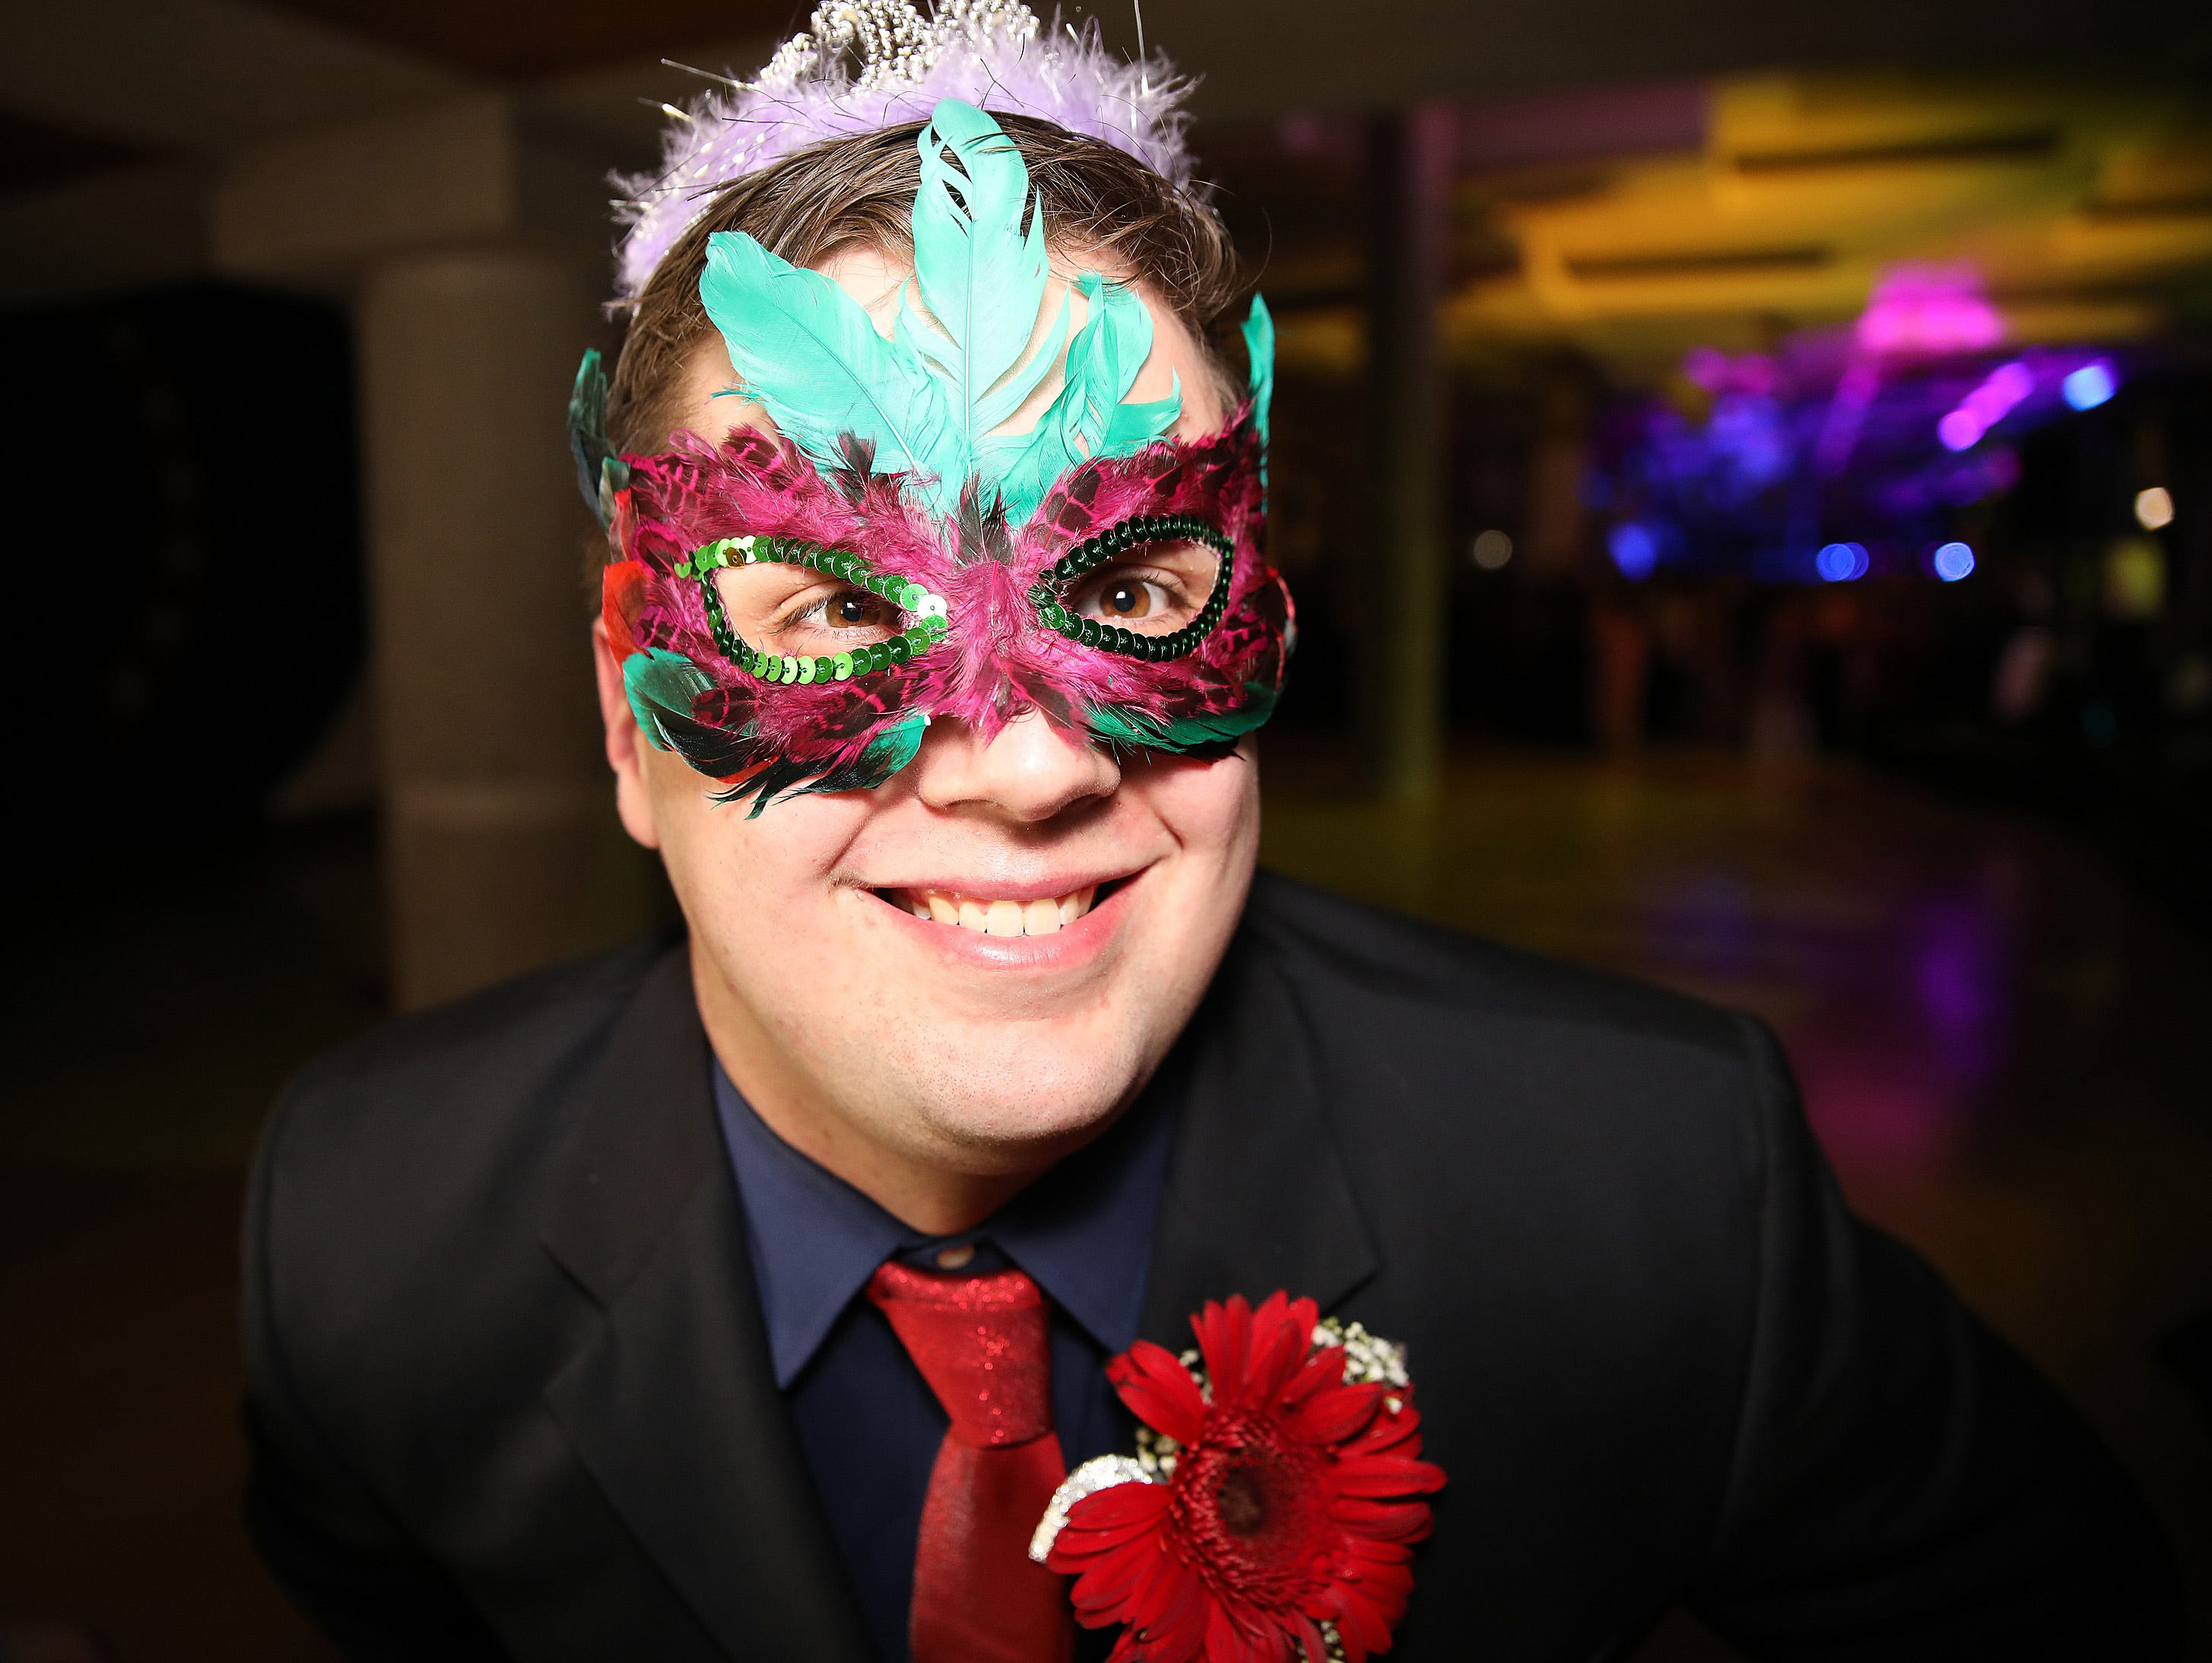 Senior Griffin Sargent is the man behind the mask at the photo booth during the Ankeny Centennial High School prom at the State Historical Building in Des Moines on Saturday, April 13, 2019.